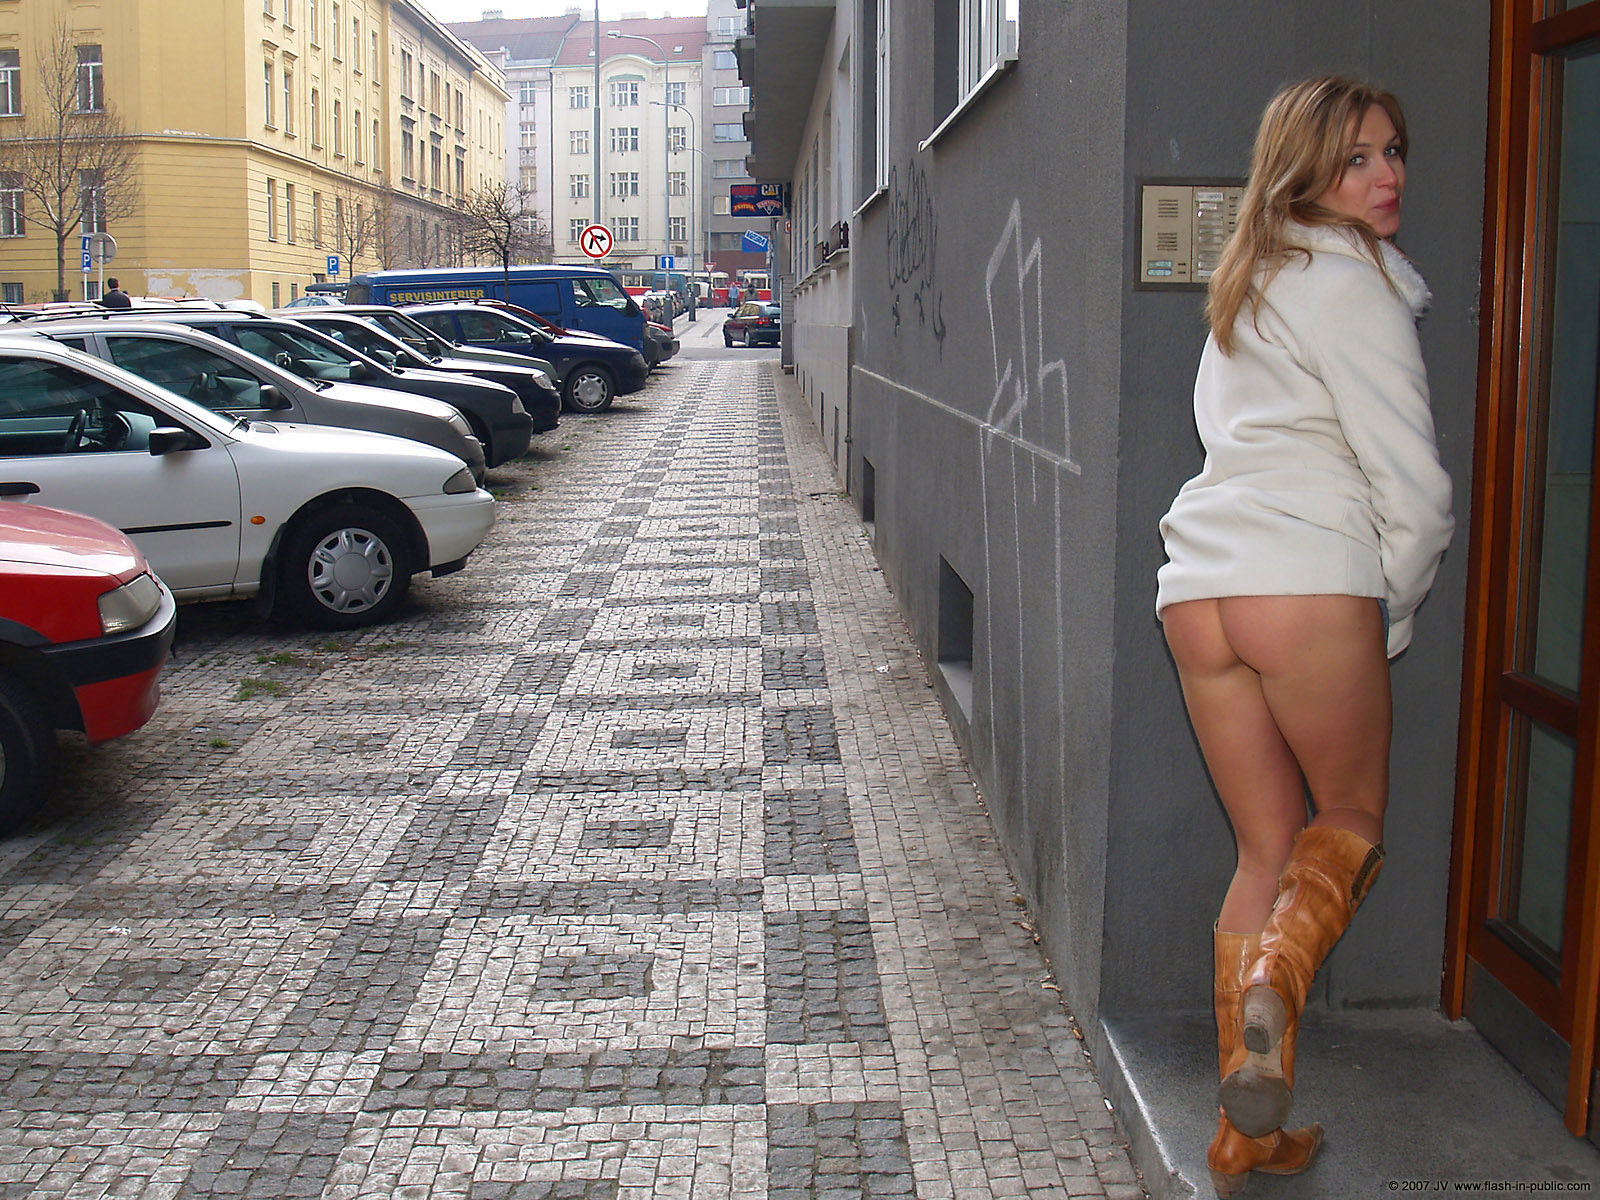 alena-n-jeans-skirt-nude-in-prague-flash-in-public-25